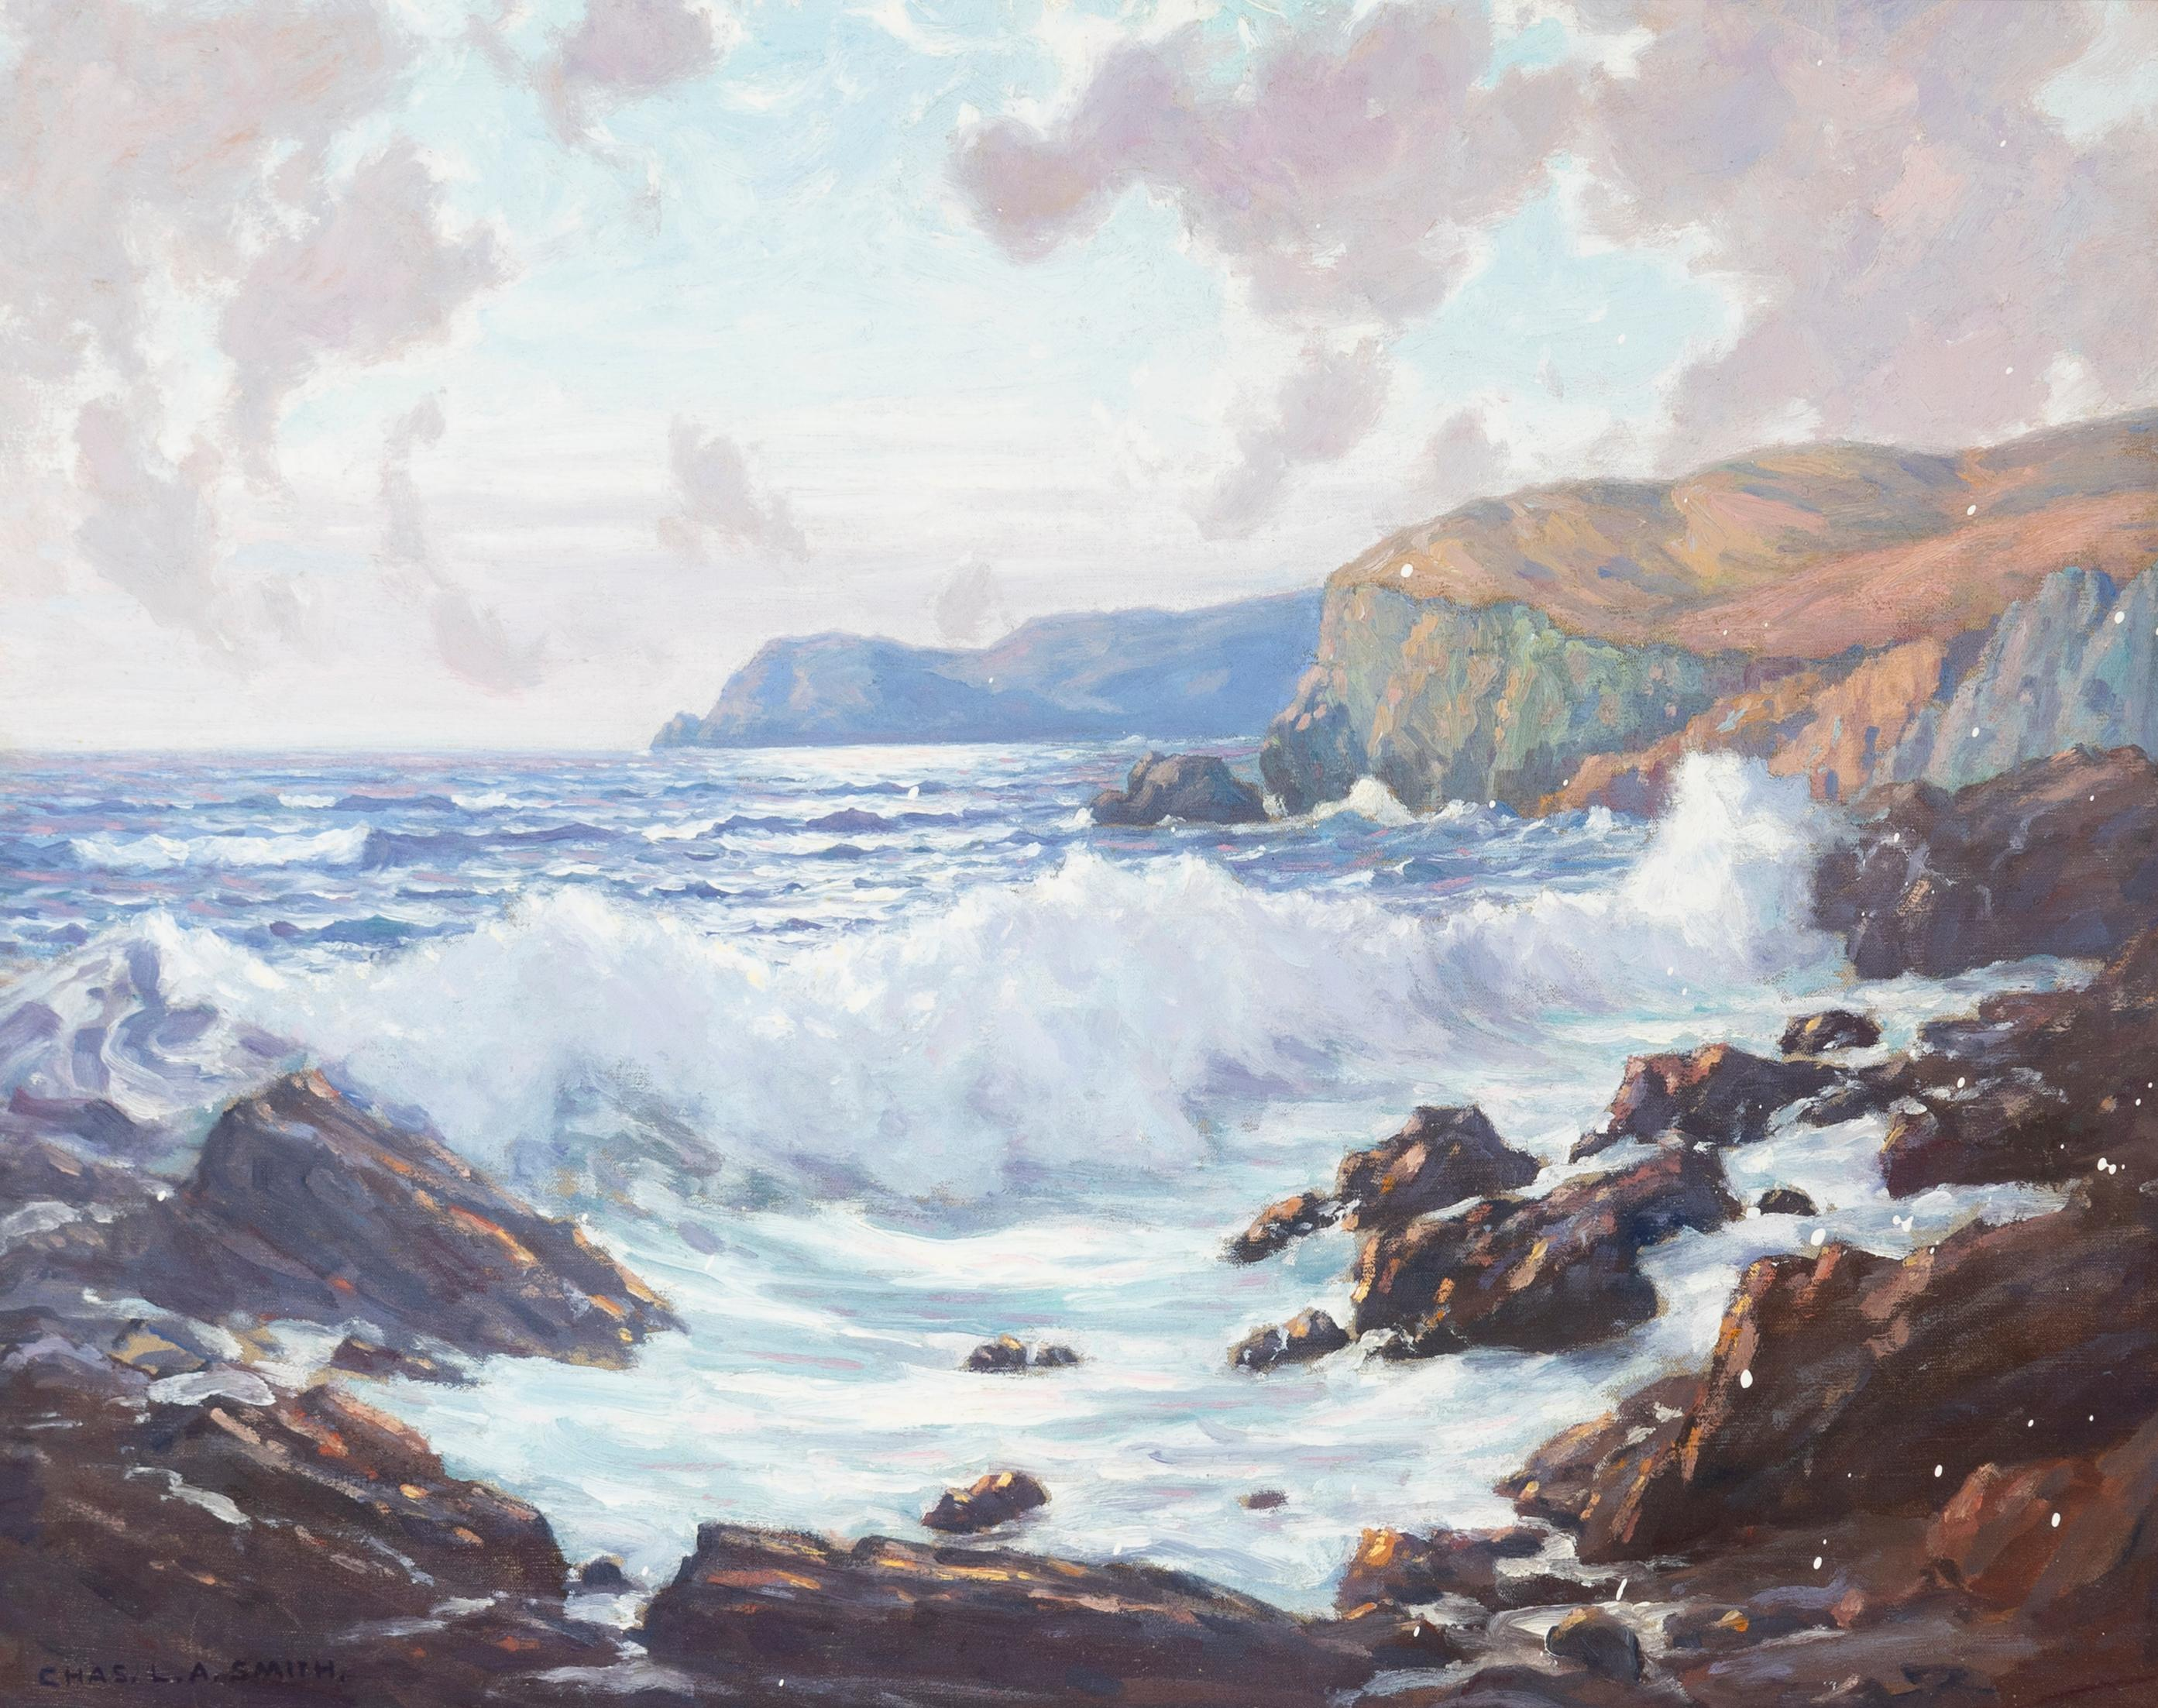 "Charles L.A. Smith, (1871-1937 Los Angeles, CA), Rocky coastal with crashing waves, Oil on canvas, 24"" H x 30"" W"